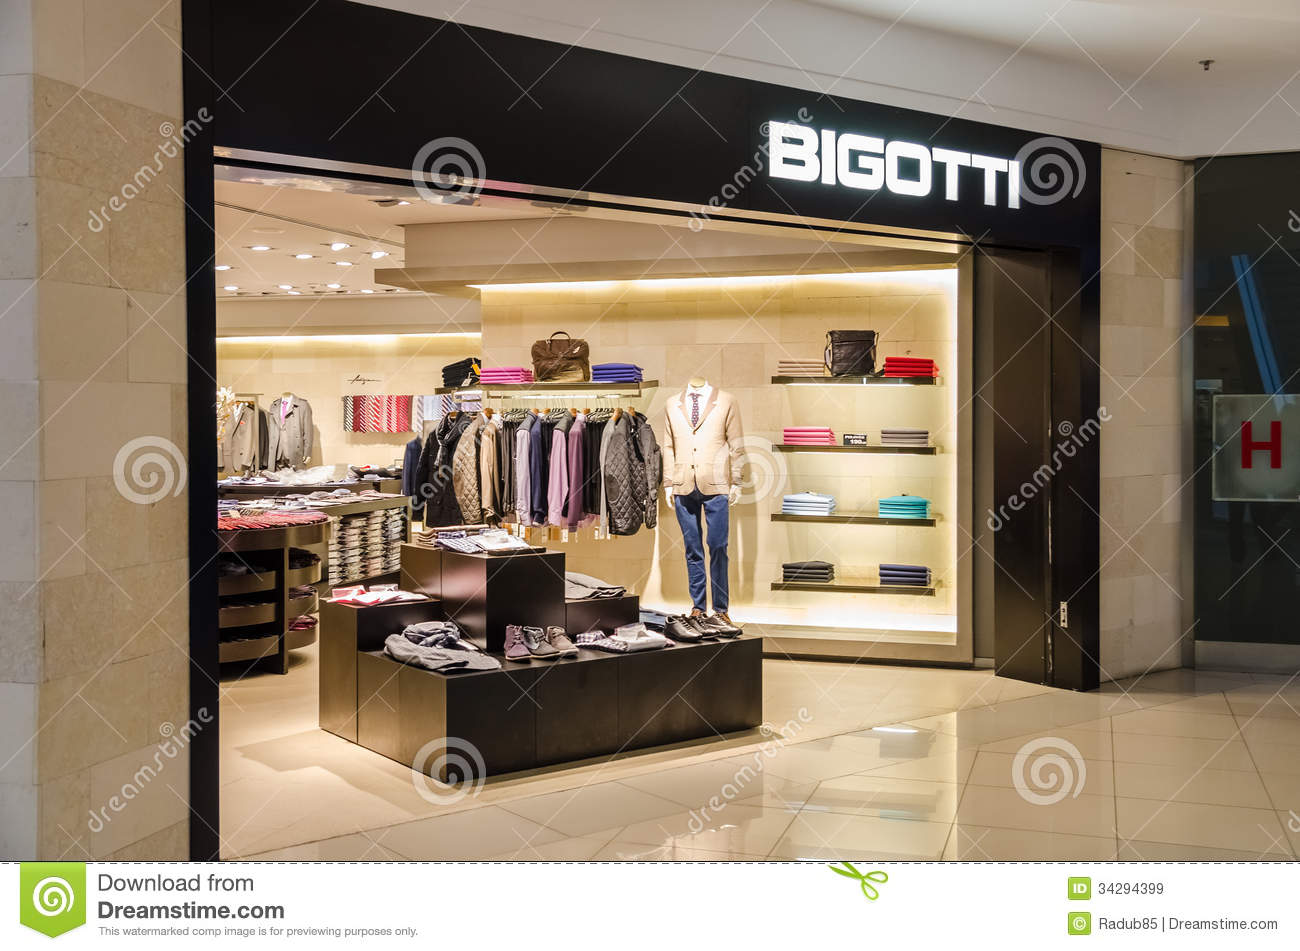 Best Men's Wear Clothing Stores In Chicago В« CBS Chicago